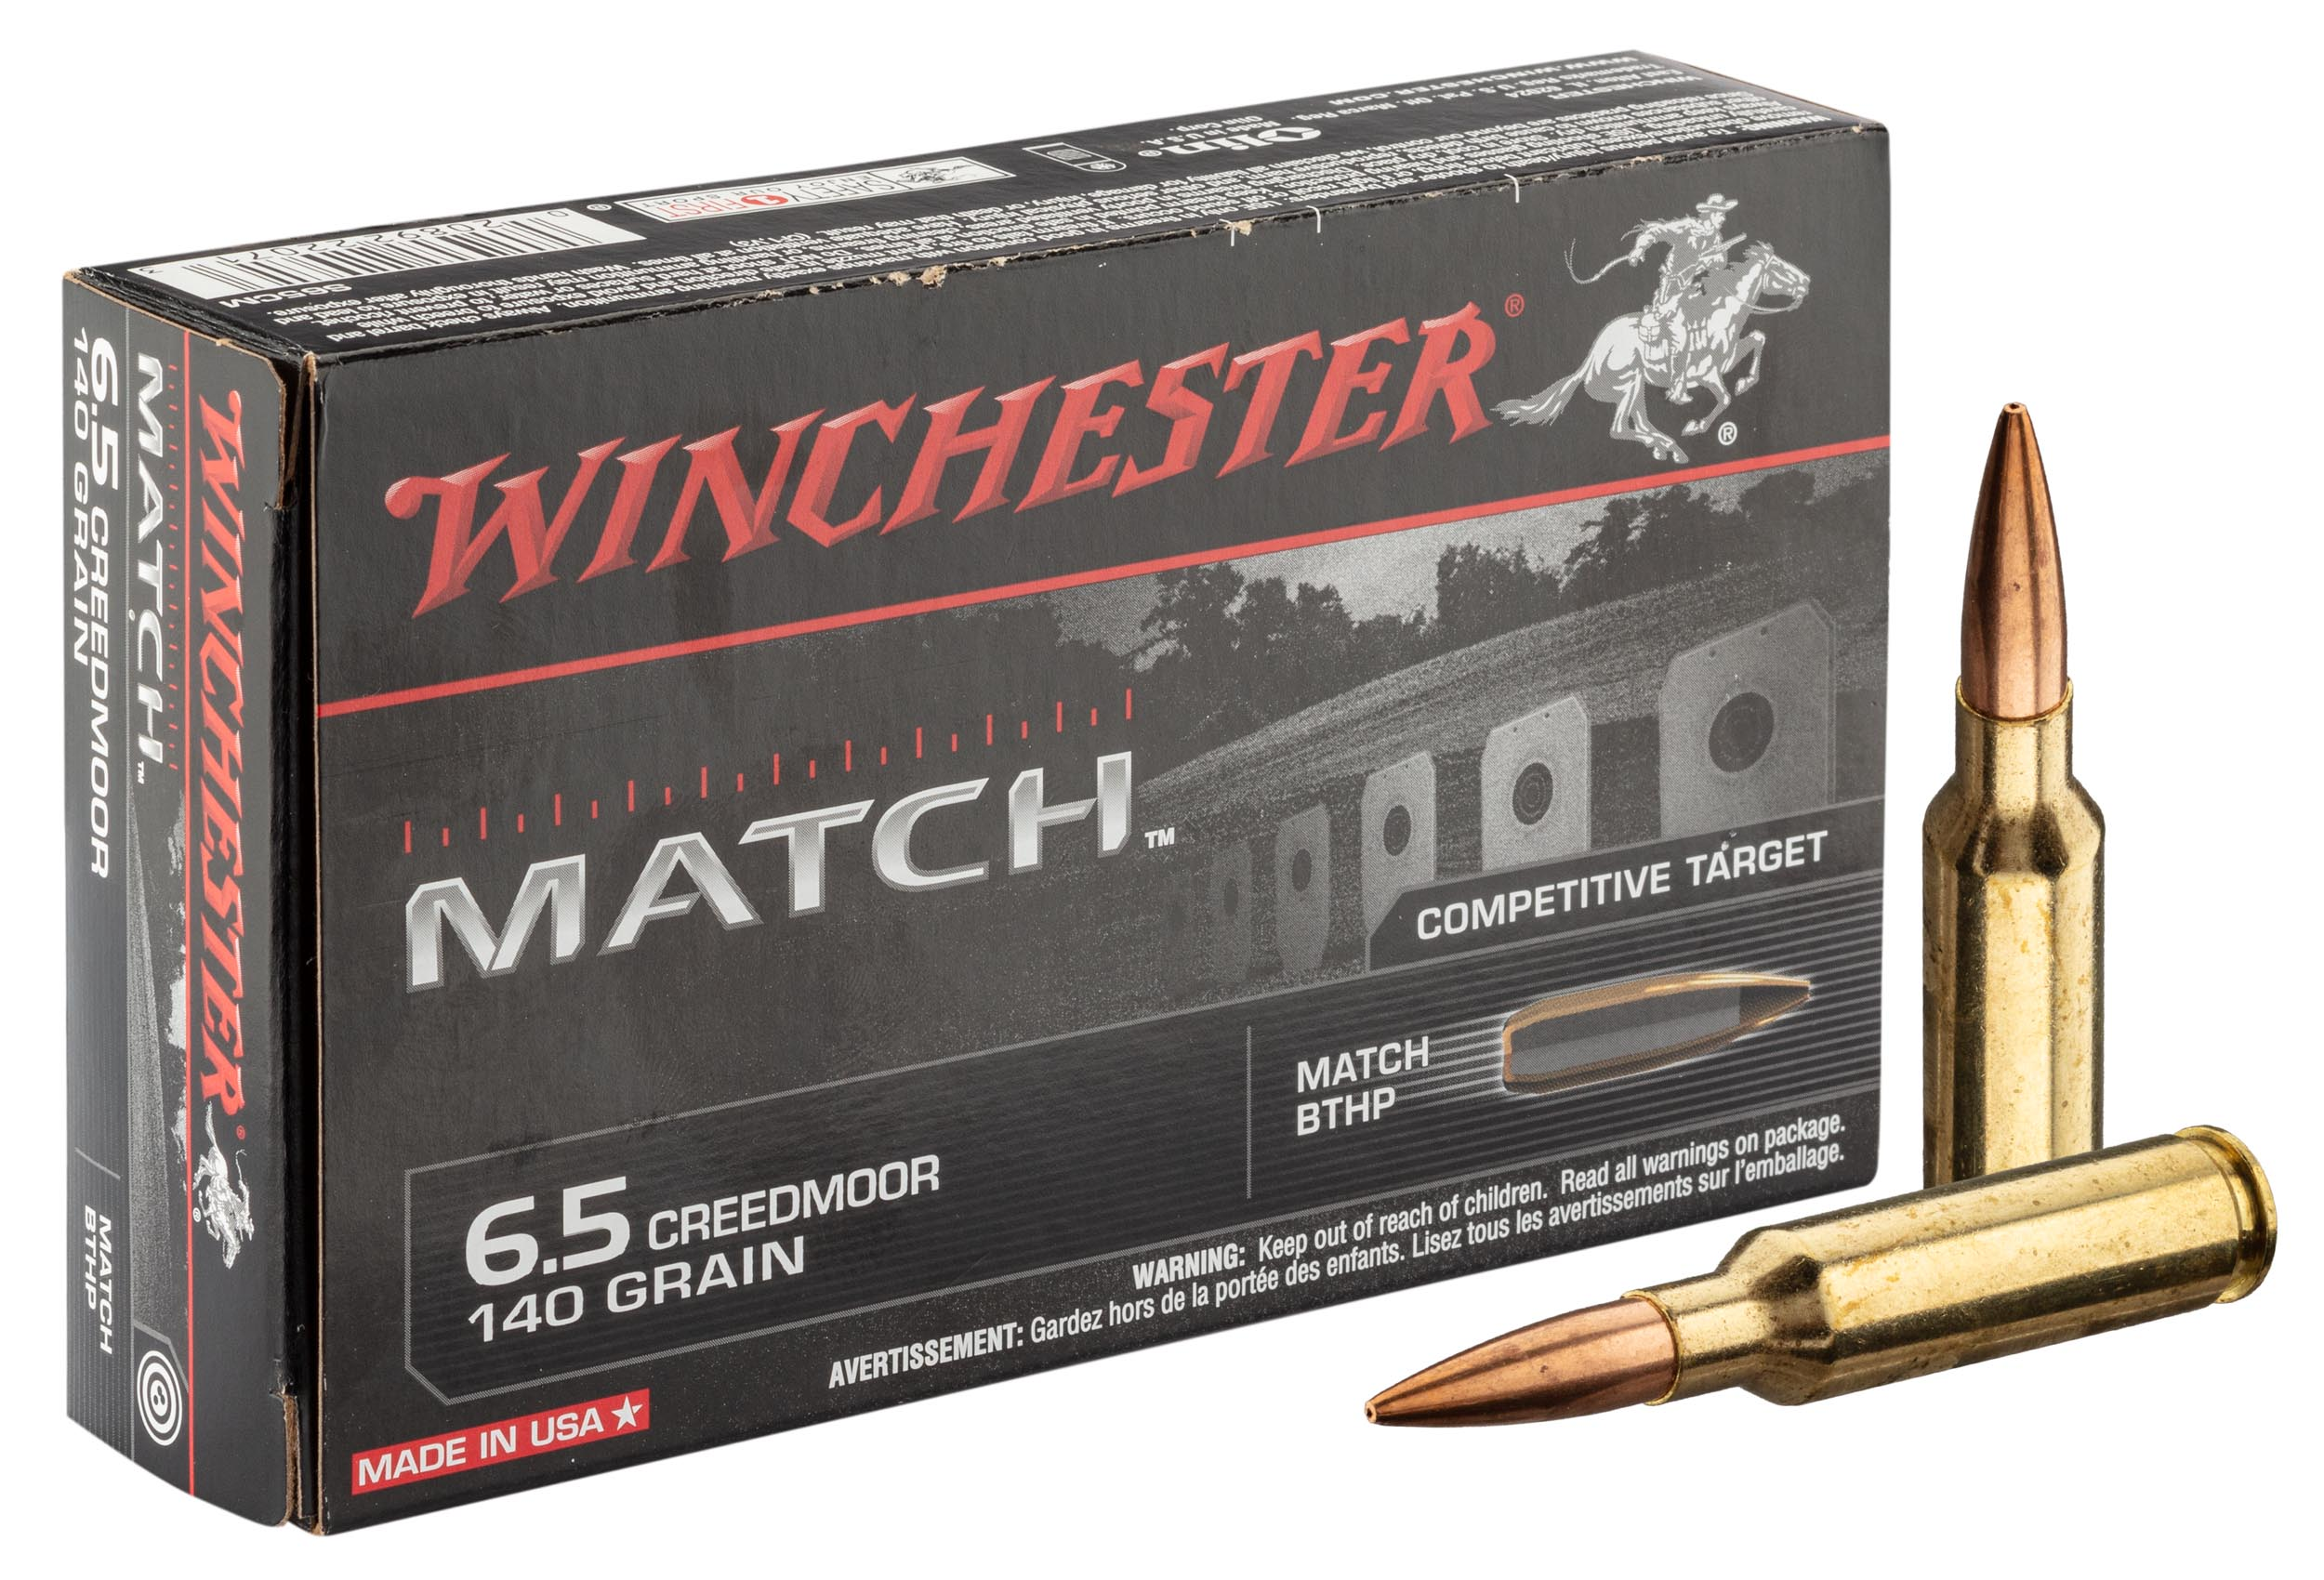 BW1900-1 Munitions Winchester 6.5 Creedmoor - BW1900